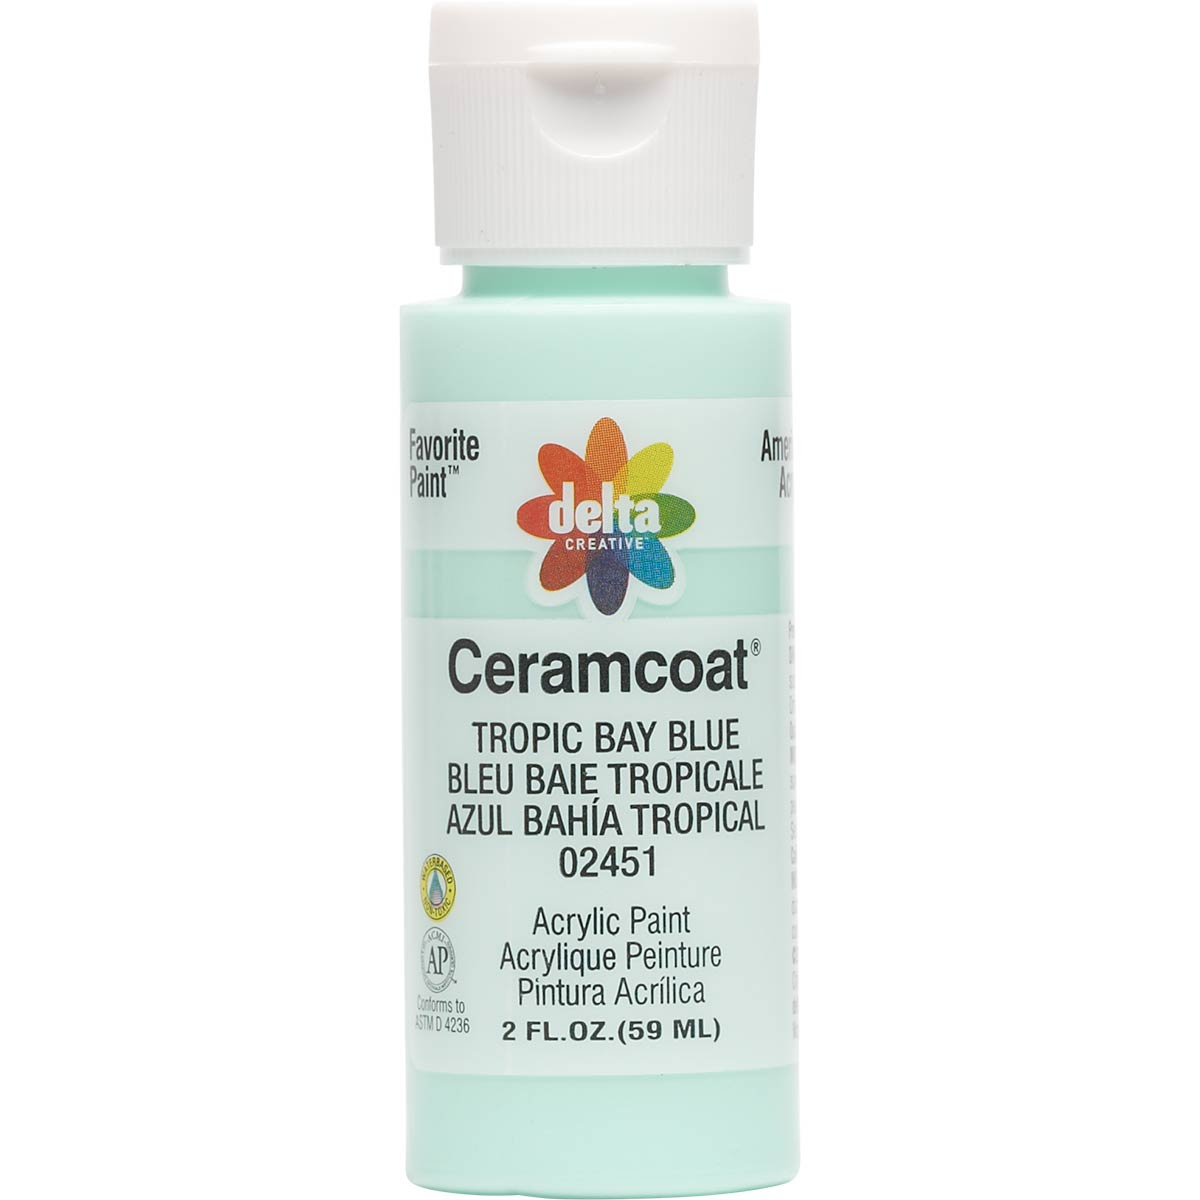 Delta Ceramcoat ® Acrylic Paint - Tropic Bay Blue, 2 oz.